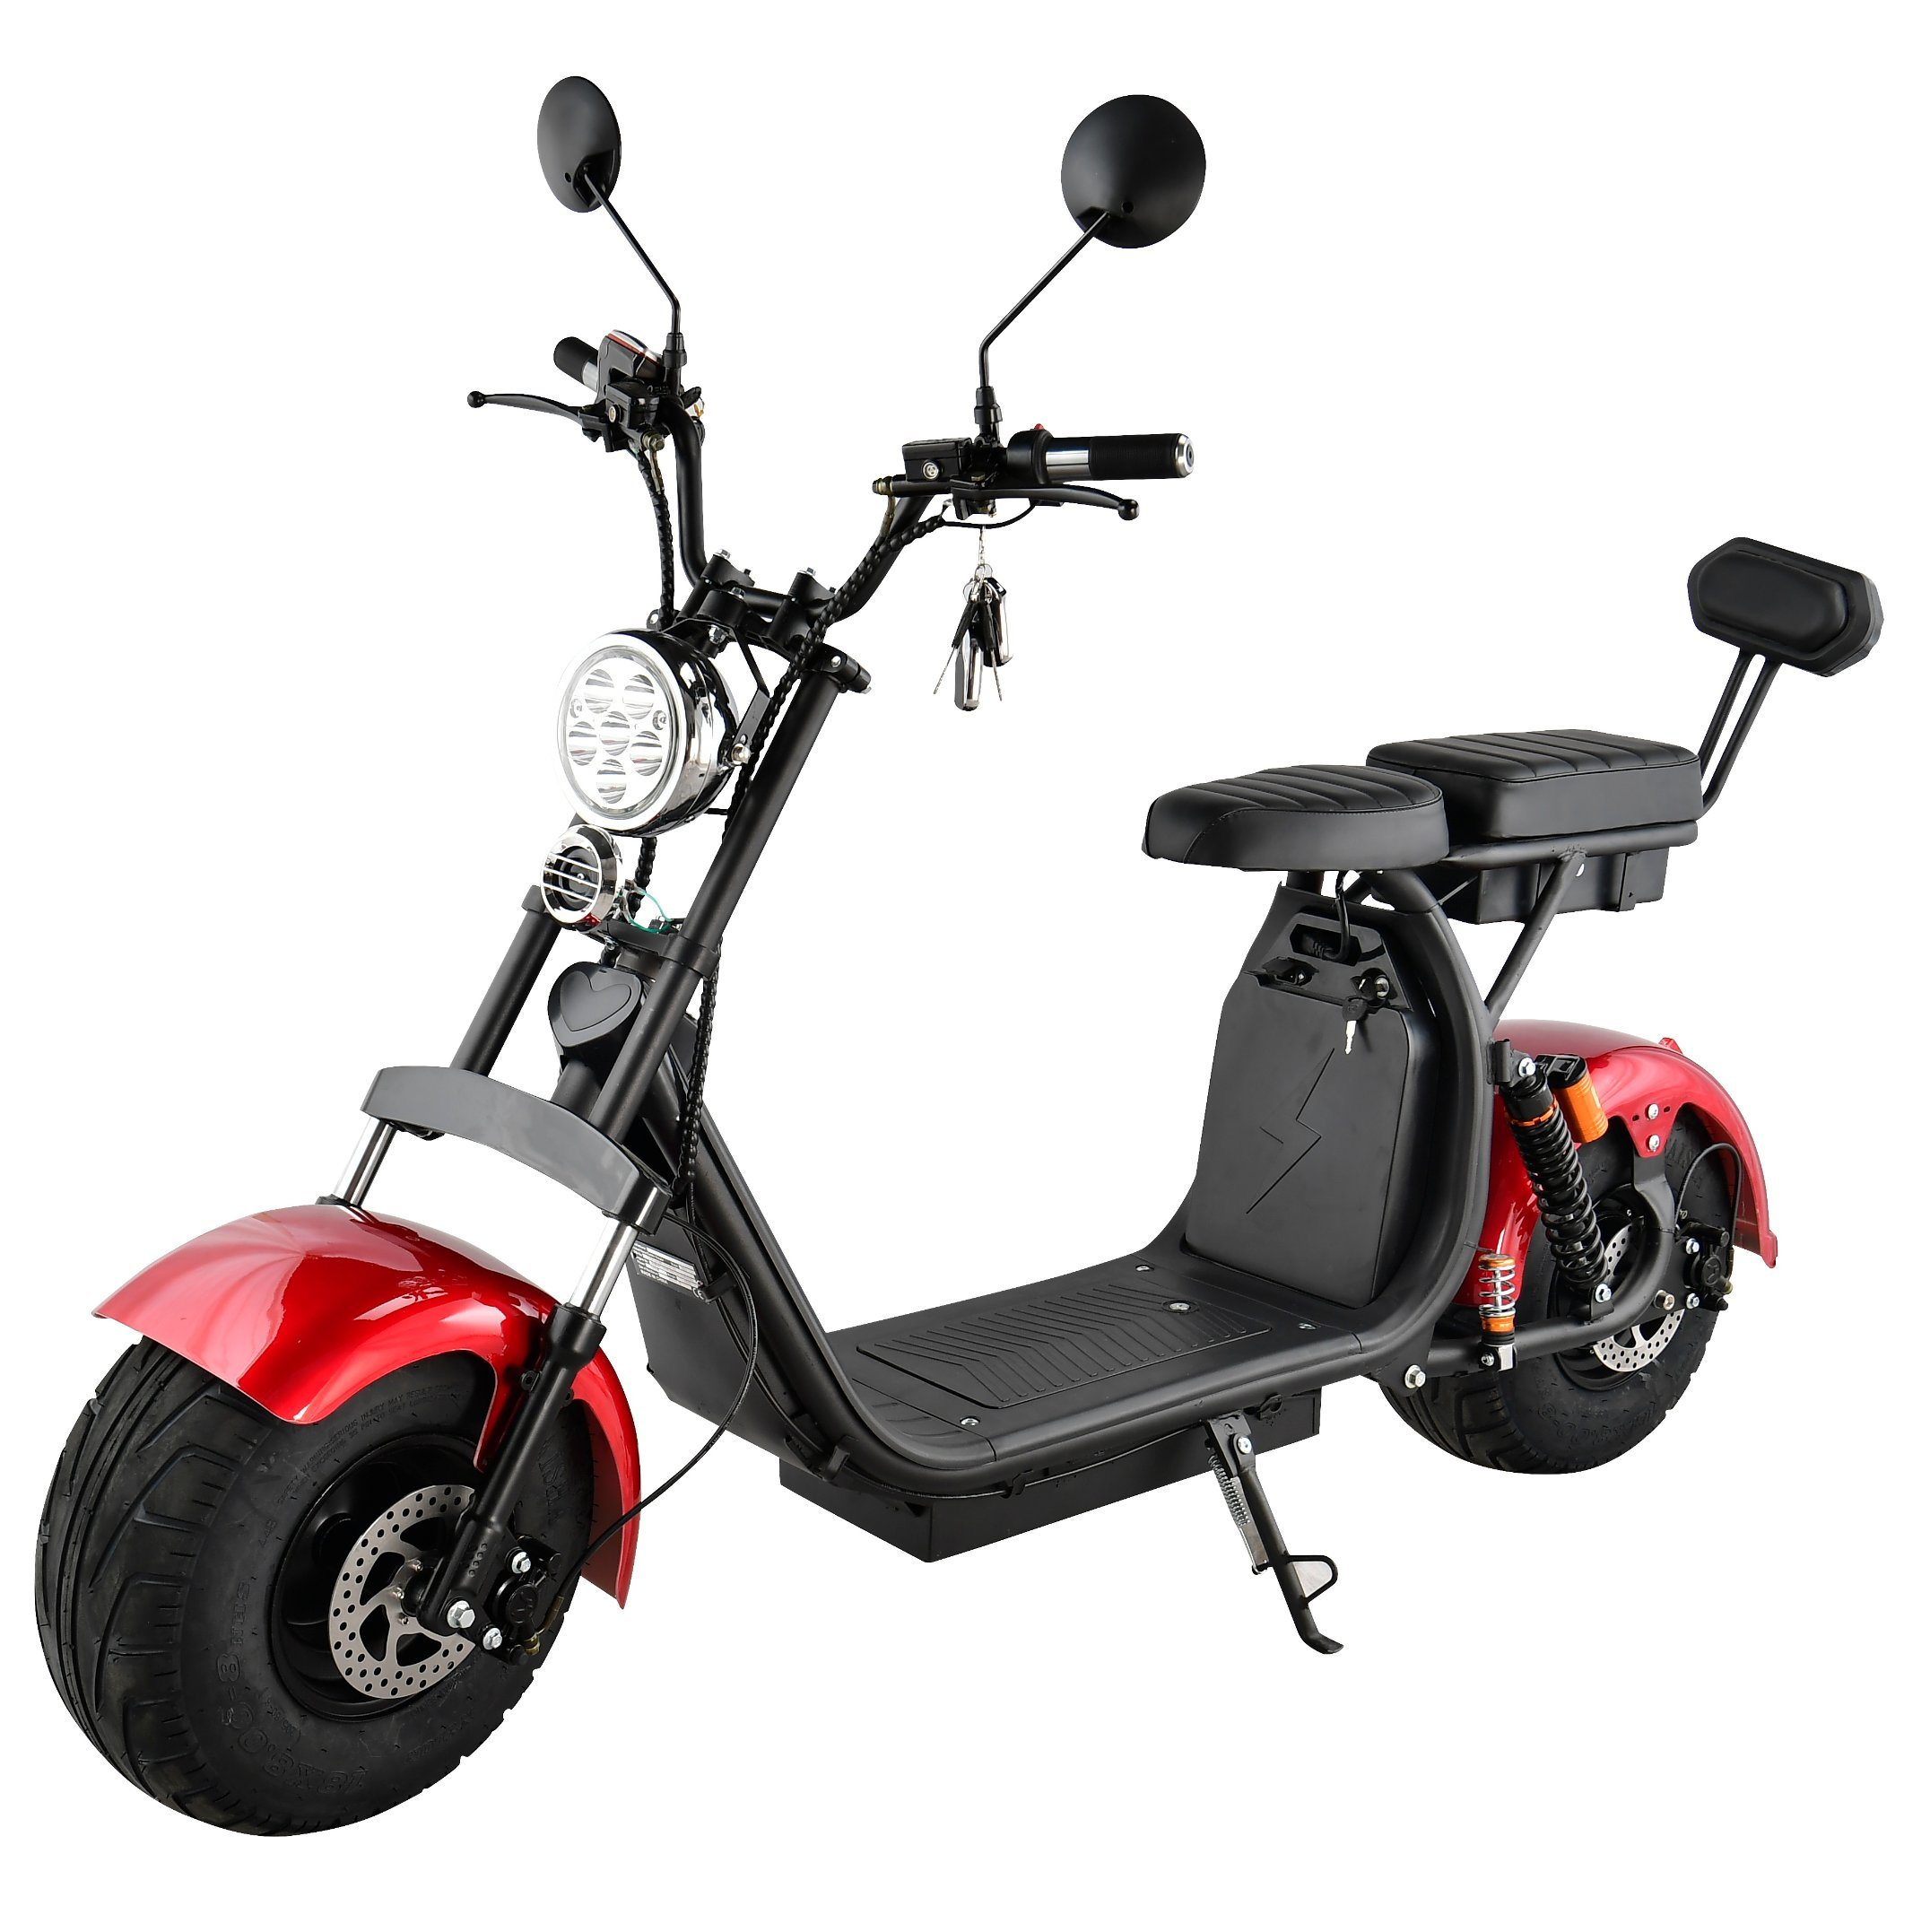 Factory Eec Coc Electric Mobility Bike Scooter Folding Motor Electric Scooter China Electric Scooter And Electric Motorcycle Price Made In China Com